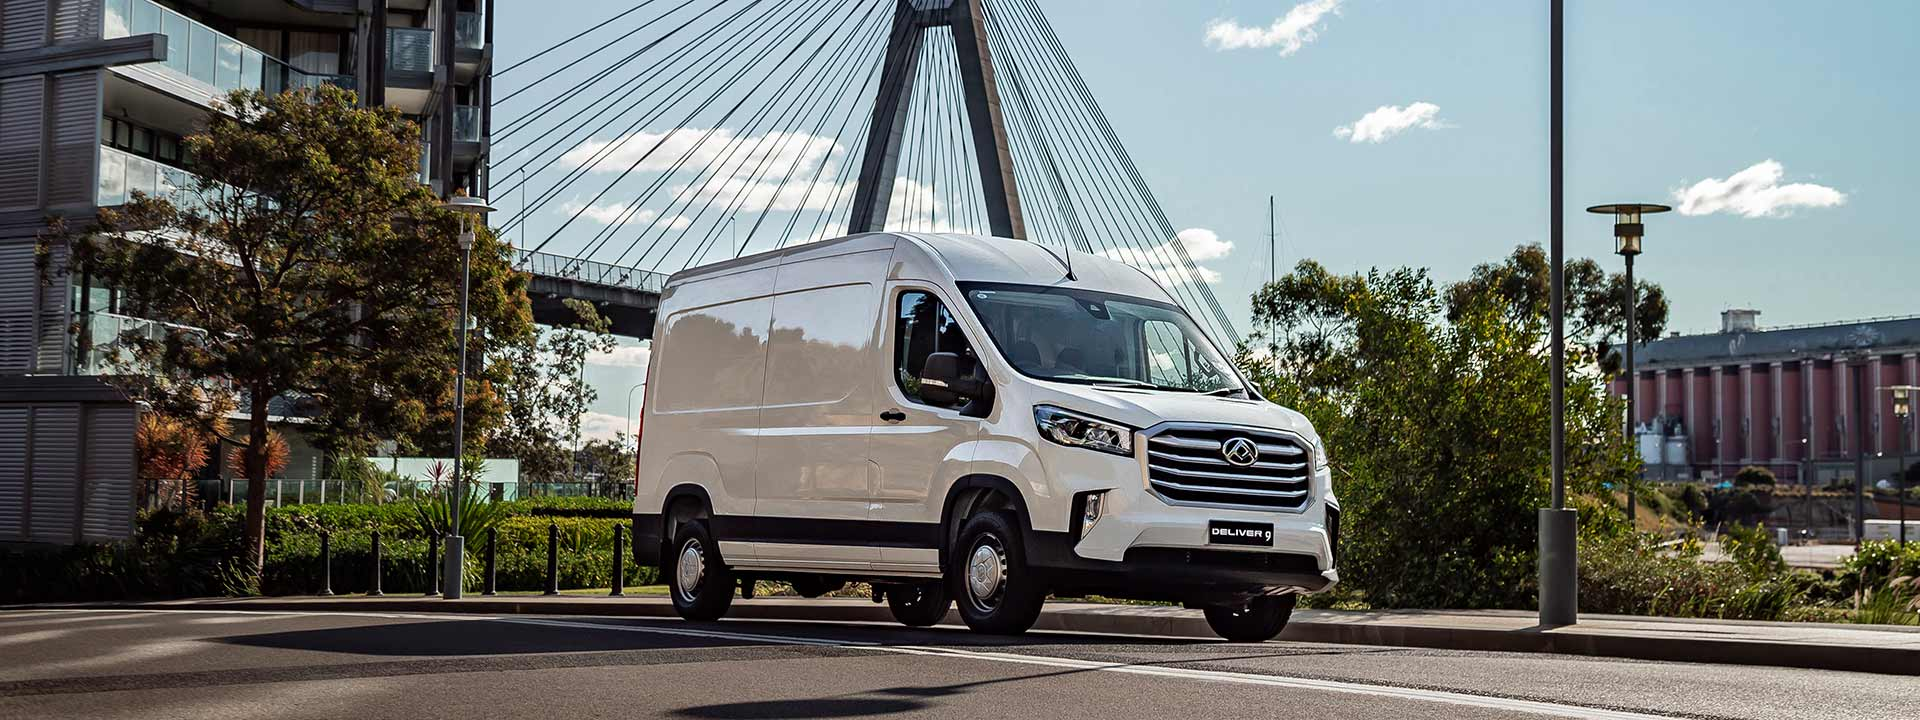 LDV Deliver 9 Large Van